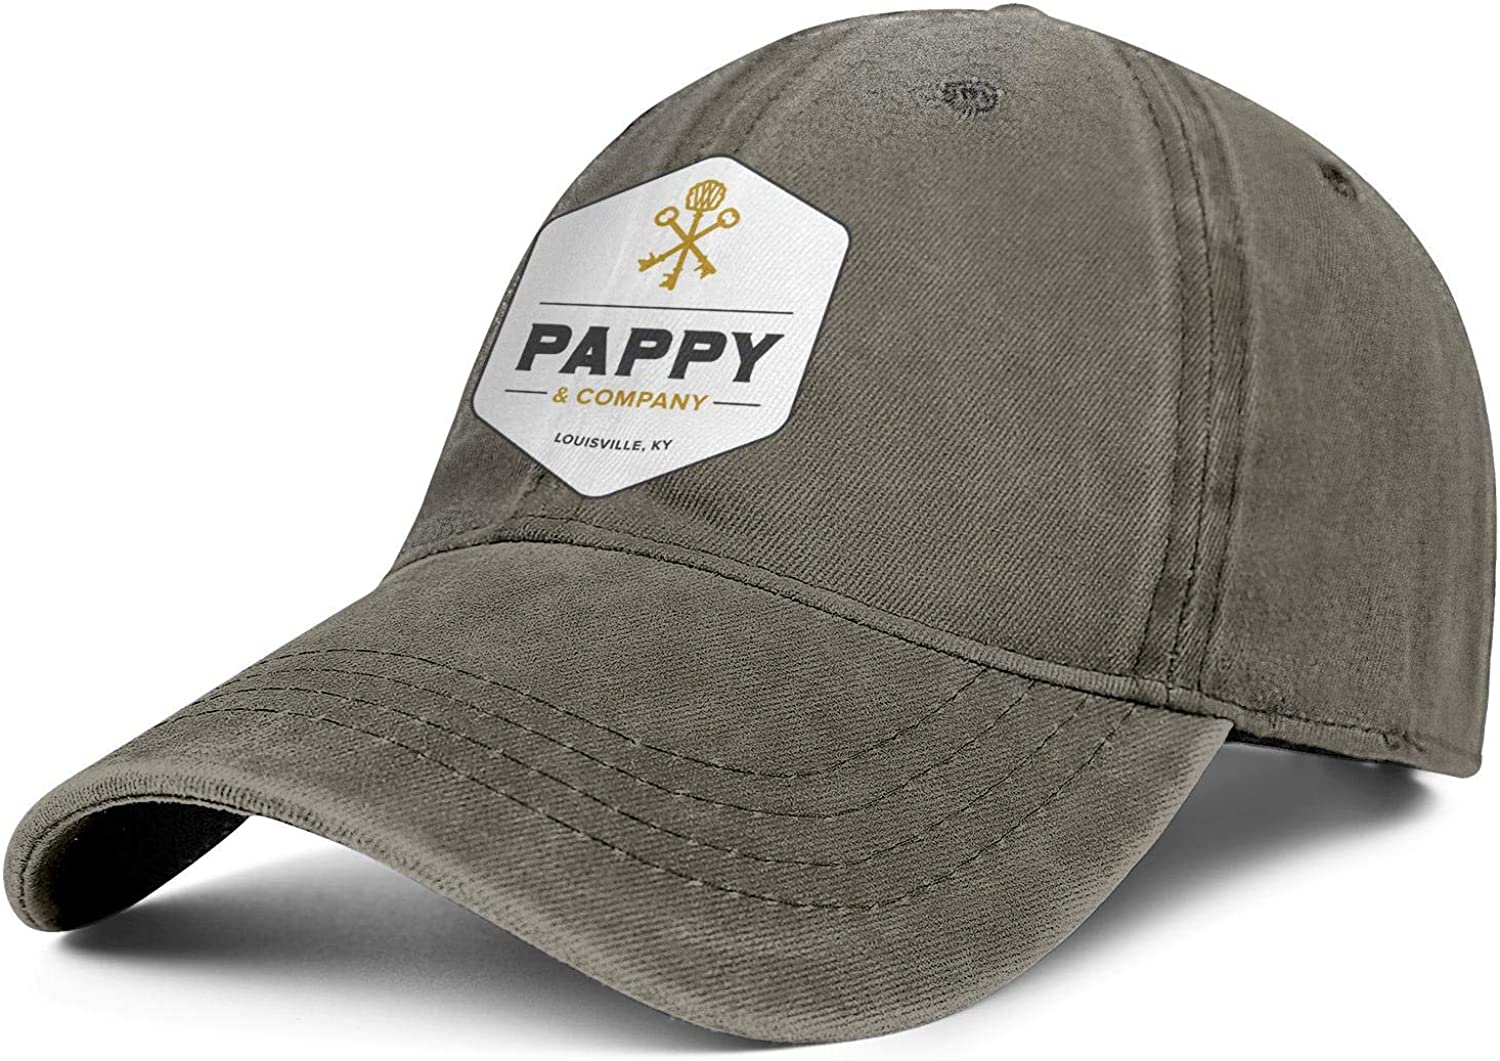 Unisex Max 59% OFF Cheap mail order shopping Cowboy Cap Pappy-Van-Winkle- Truc Soft Vintage Adjustable